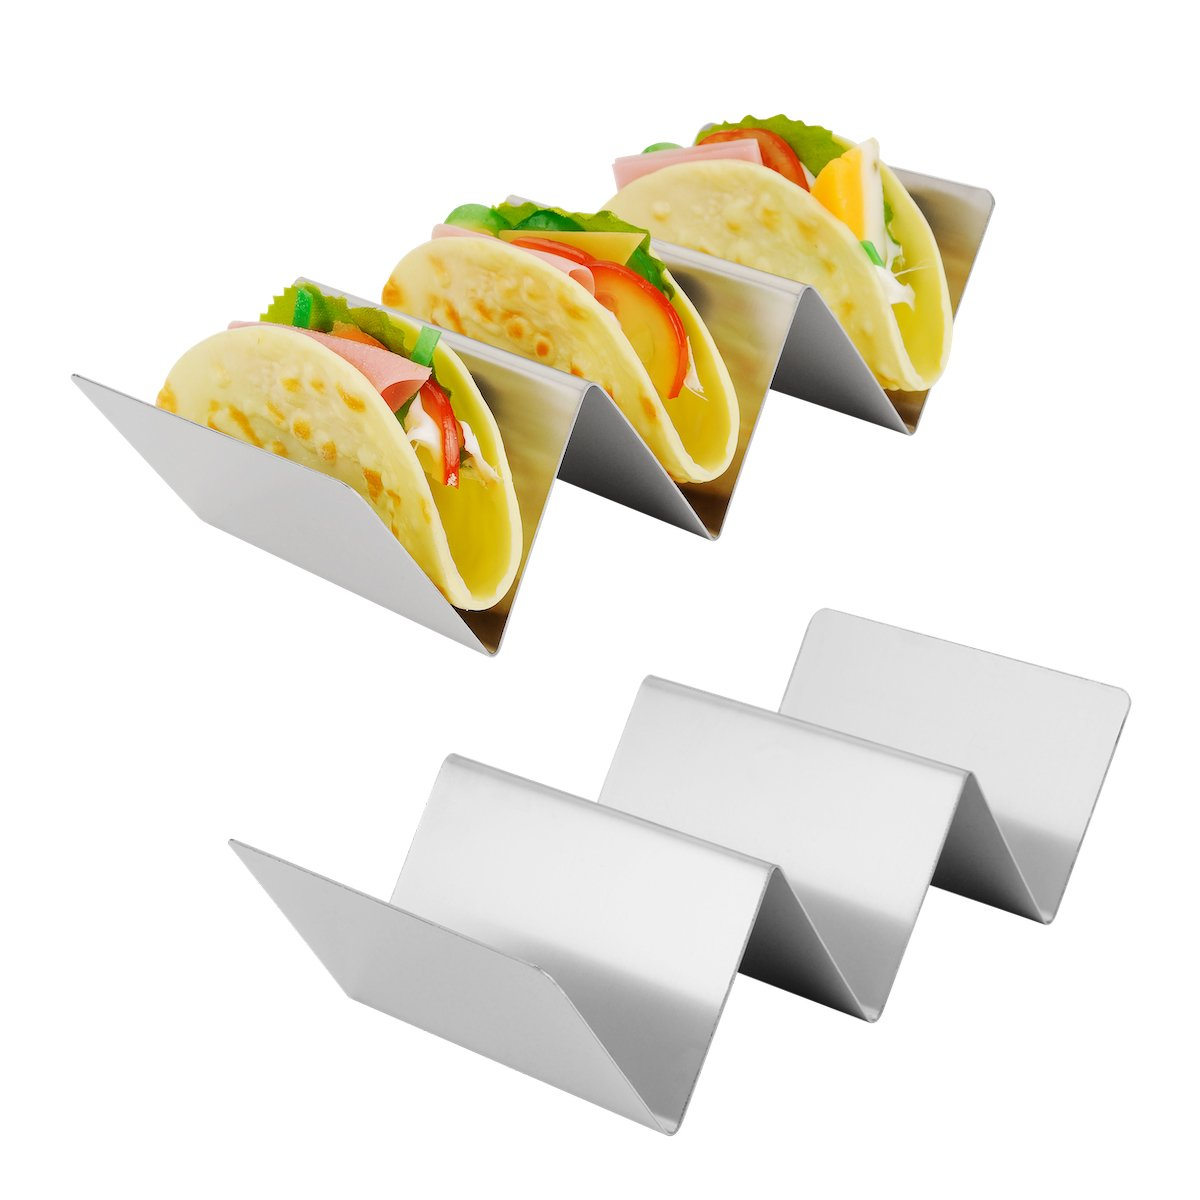 2 Pack Taco Holder Stand, Amazer Large Stainless Steel Taco Rack Hold Hard or Soft Taco Shells, Oven Safe for Baking Dishwasher and Grill Safe -Hold 2 or 3 Tacos